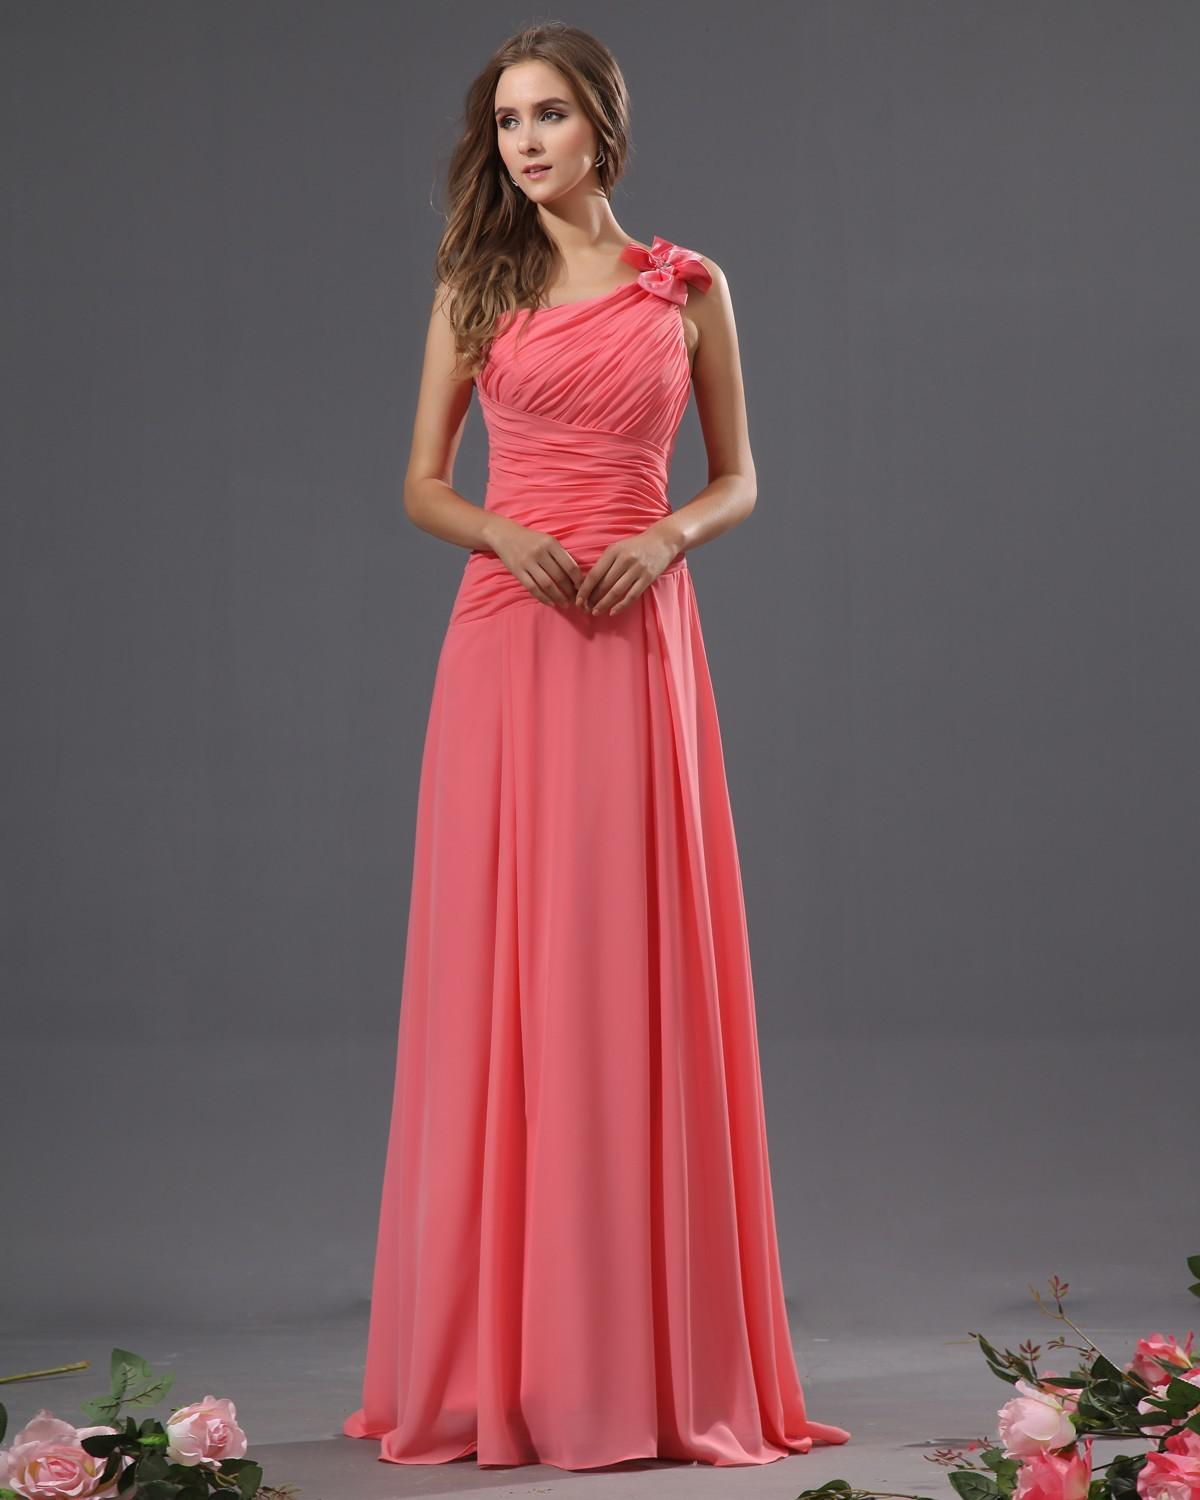 Charming fashion a line one shoulder watermelon coral pink chiffon charming fashion a line one shoulder watermelon coral pink chiffon pleated sweep train bridesmaid dresses long evening prom dresses discount wedding dress ombrellifo Image collections